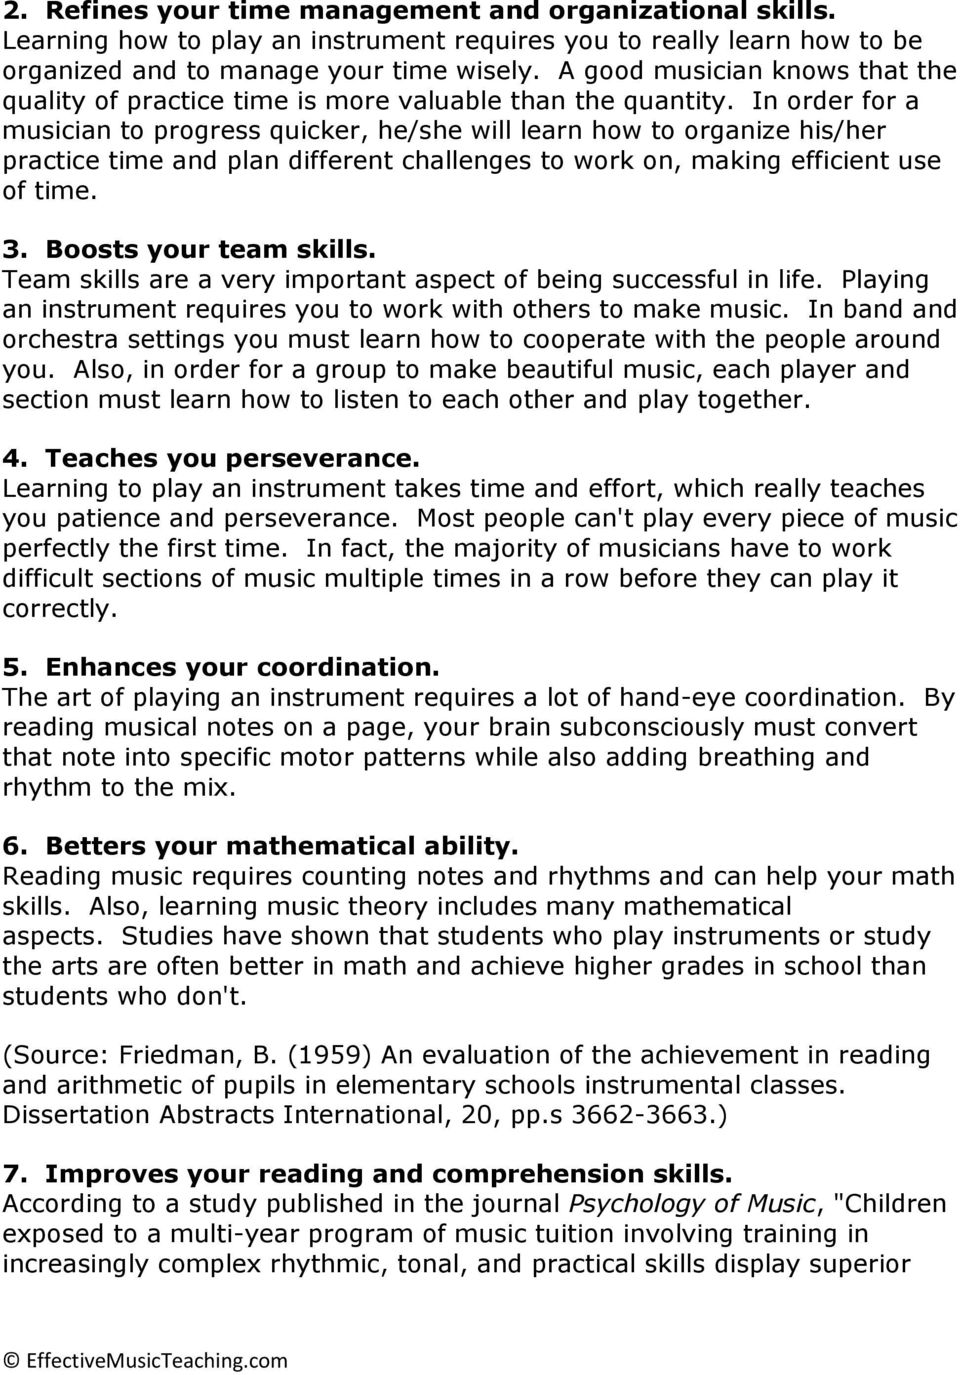 18 Benefits of Playing a Musical Instrument - PDF